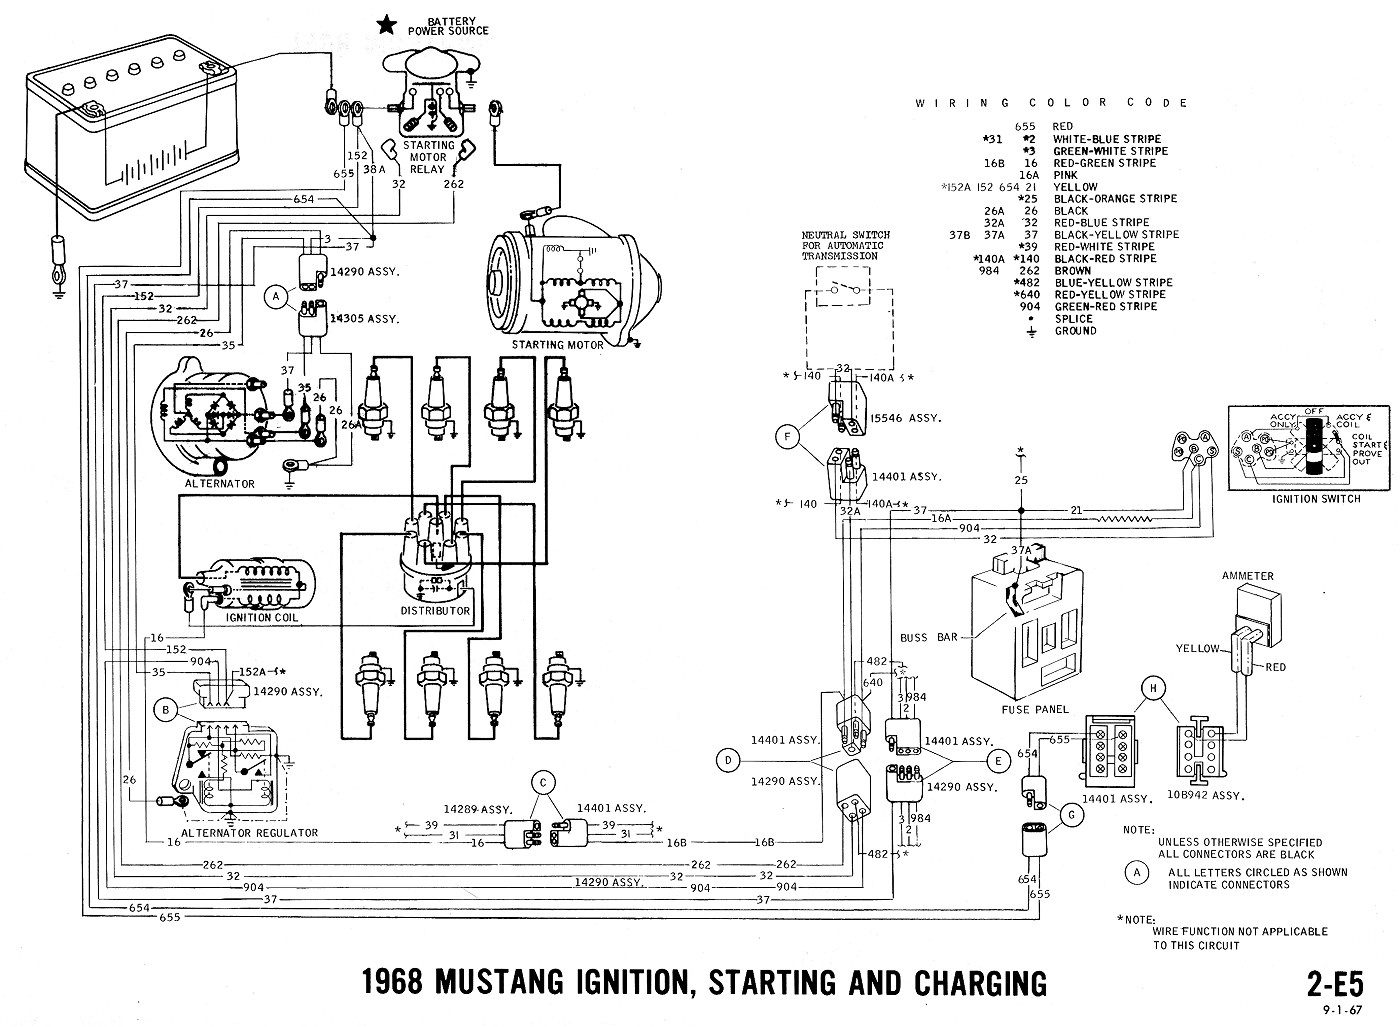 1968 Mustang Wiring Diagrams Evolving Software Lighting Circuit Diagram On Basic Electrical Charging Starting